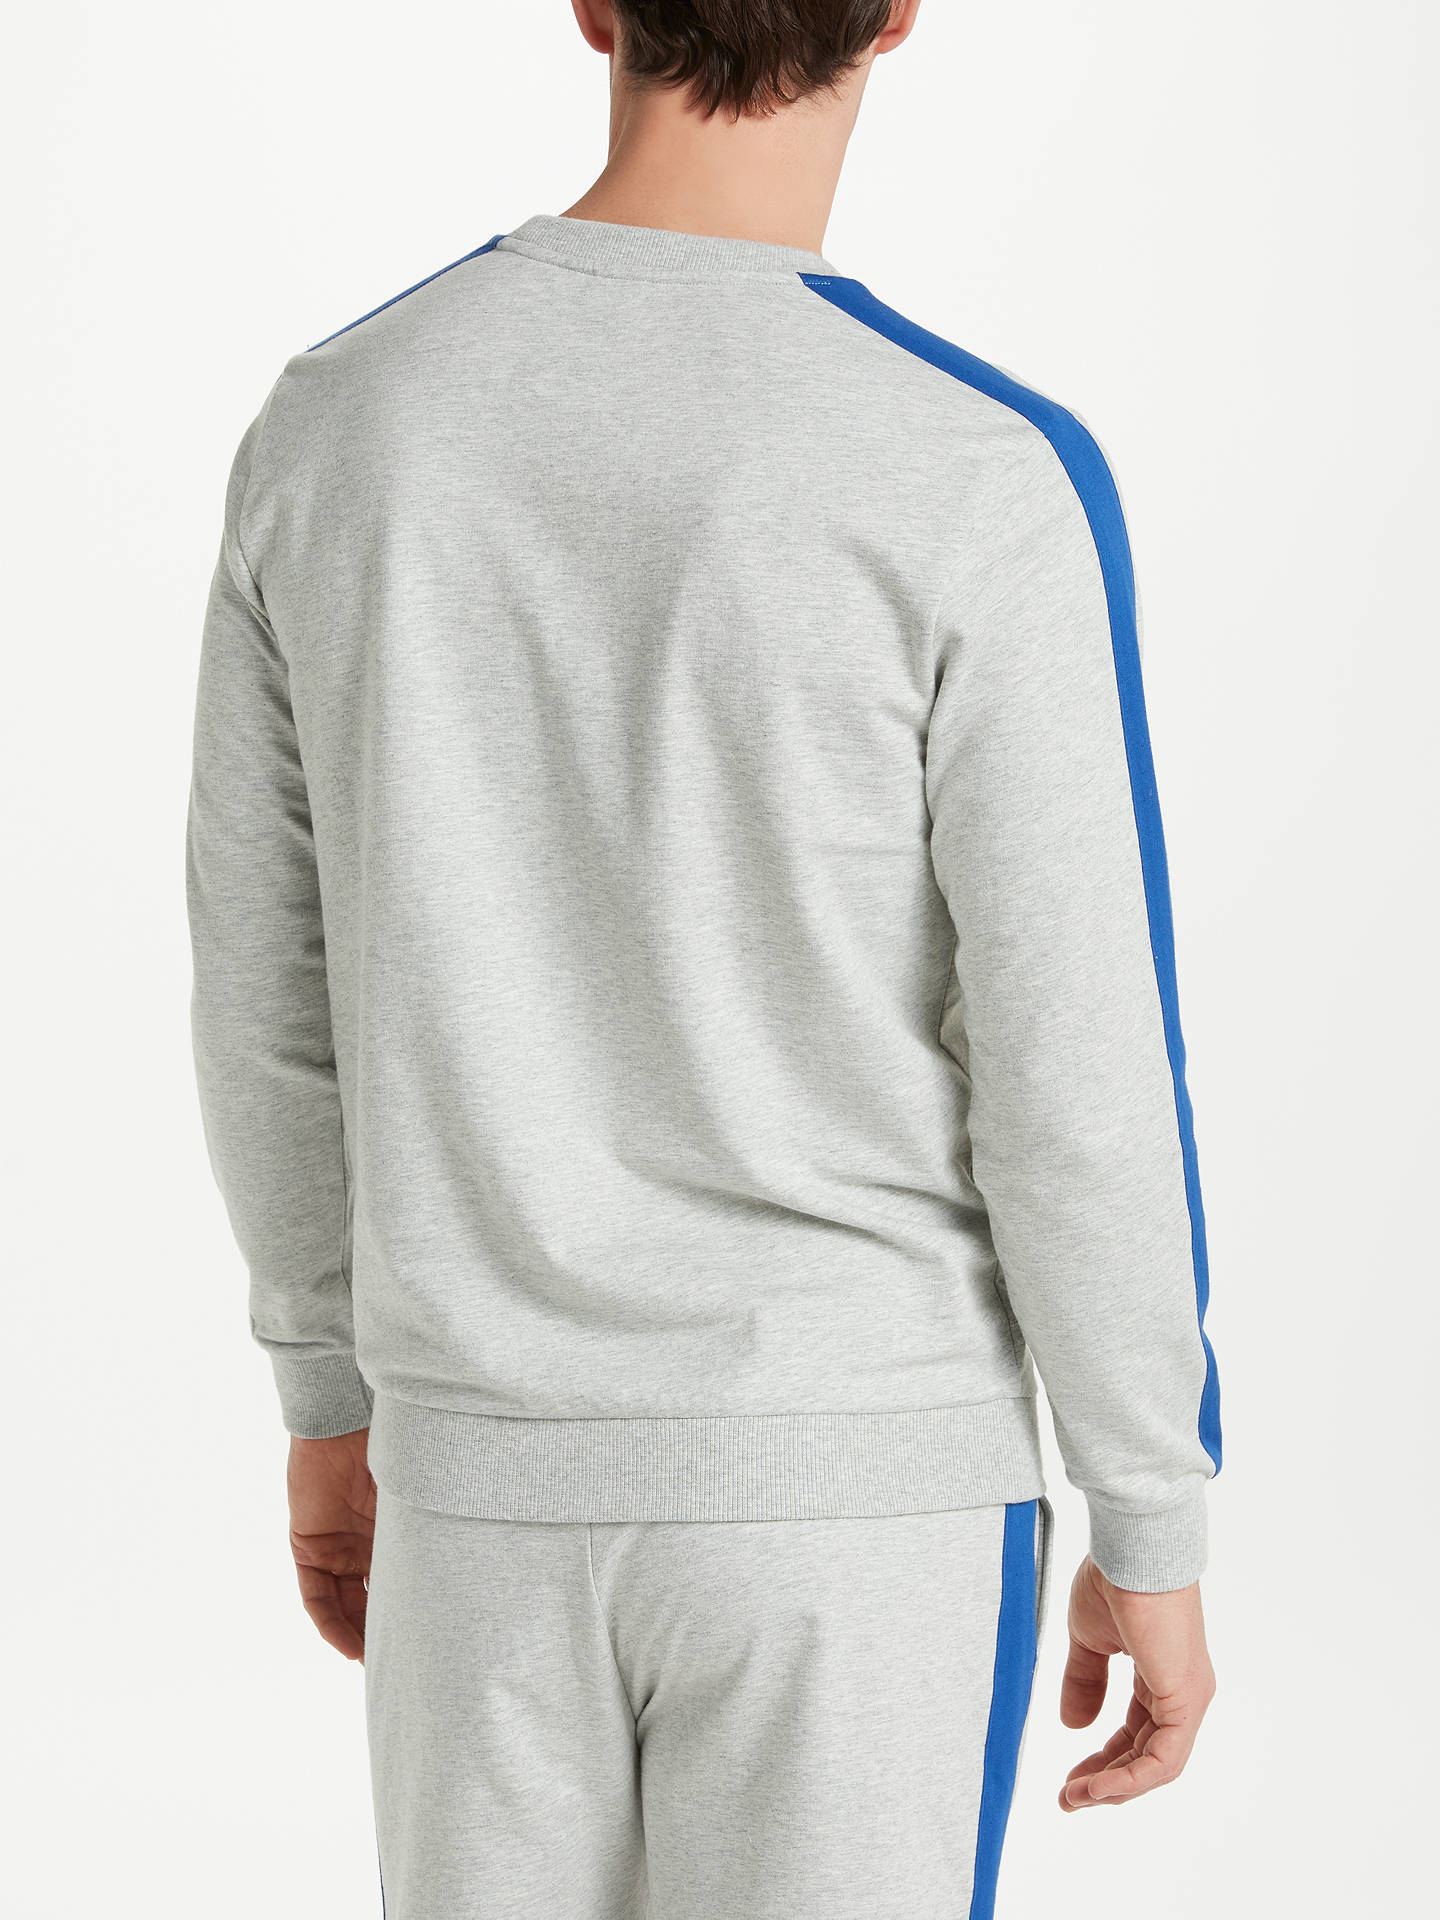 Buy BOSS Authentic Jersey Lounge Sweatshirt, Grey/Multi, M Online at johnlewis.com